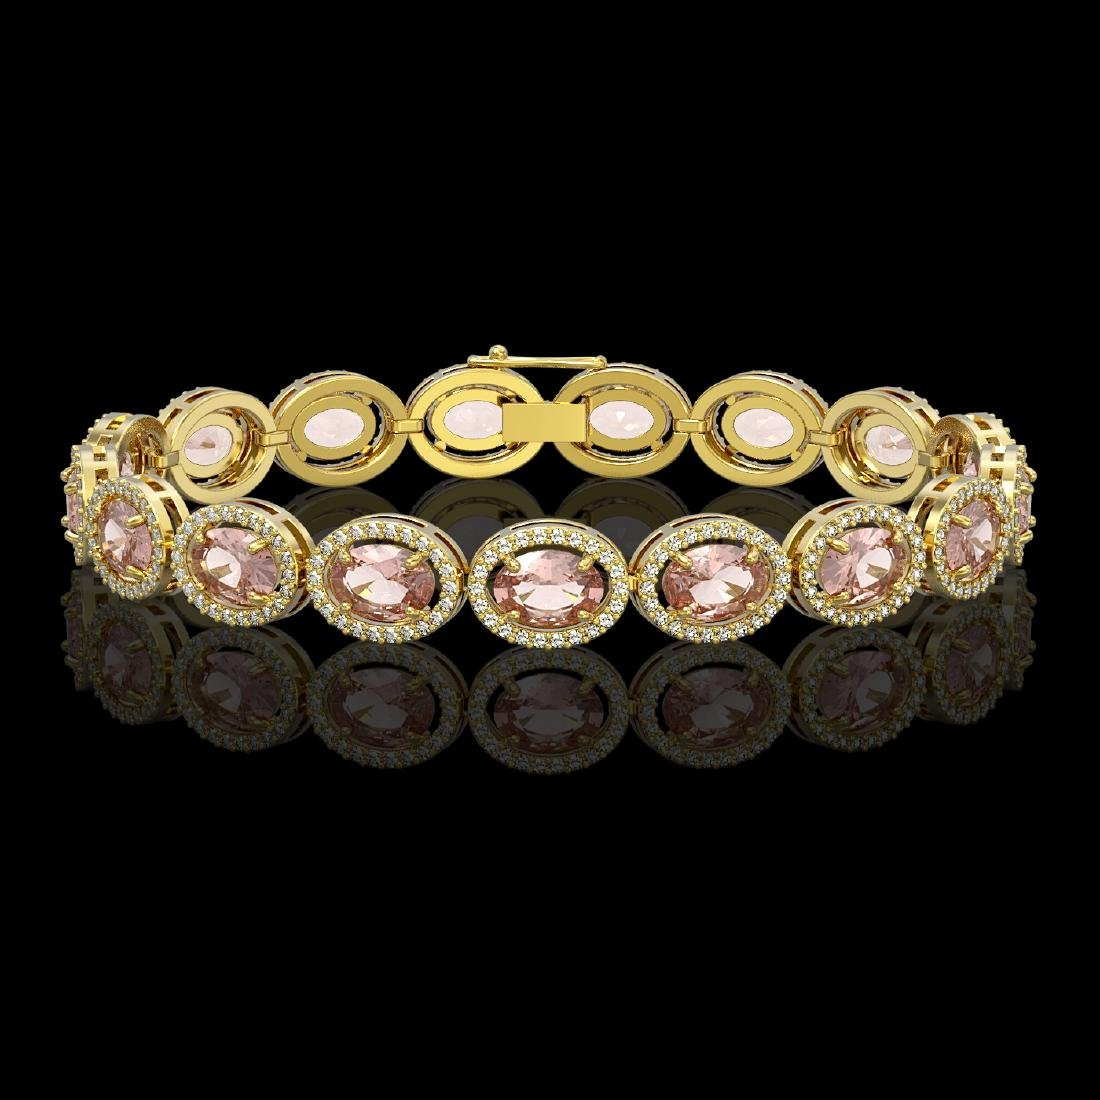 20.18 CTW Morganite & Diamond Halo Bracelet 10K Yellow